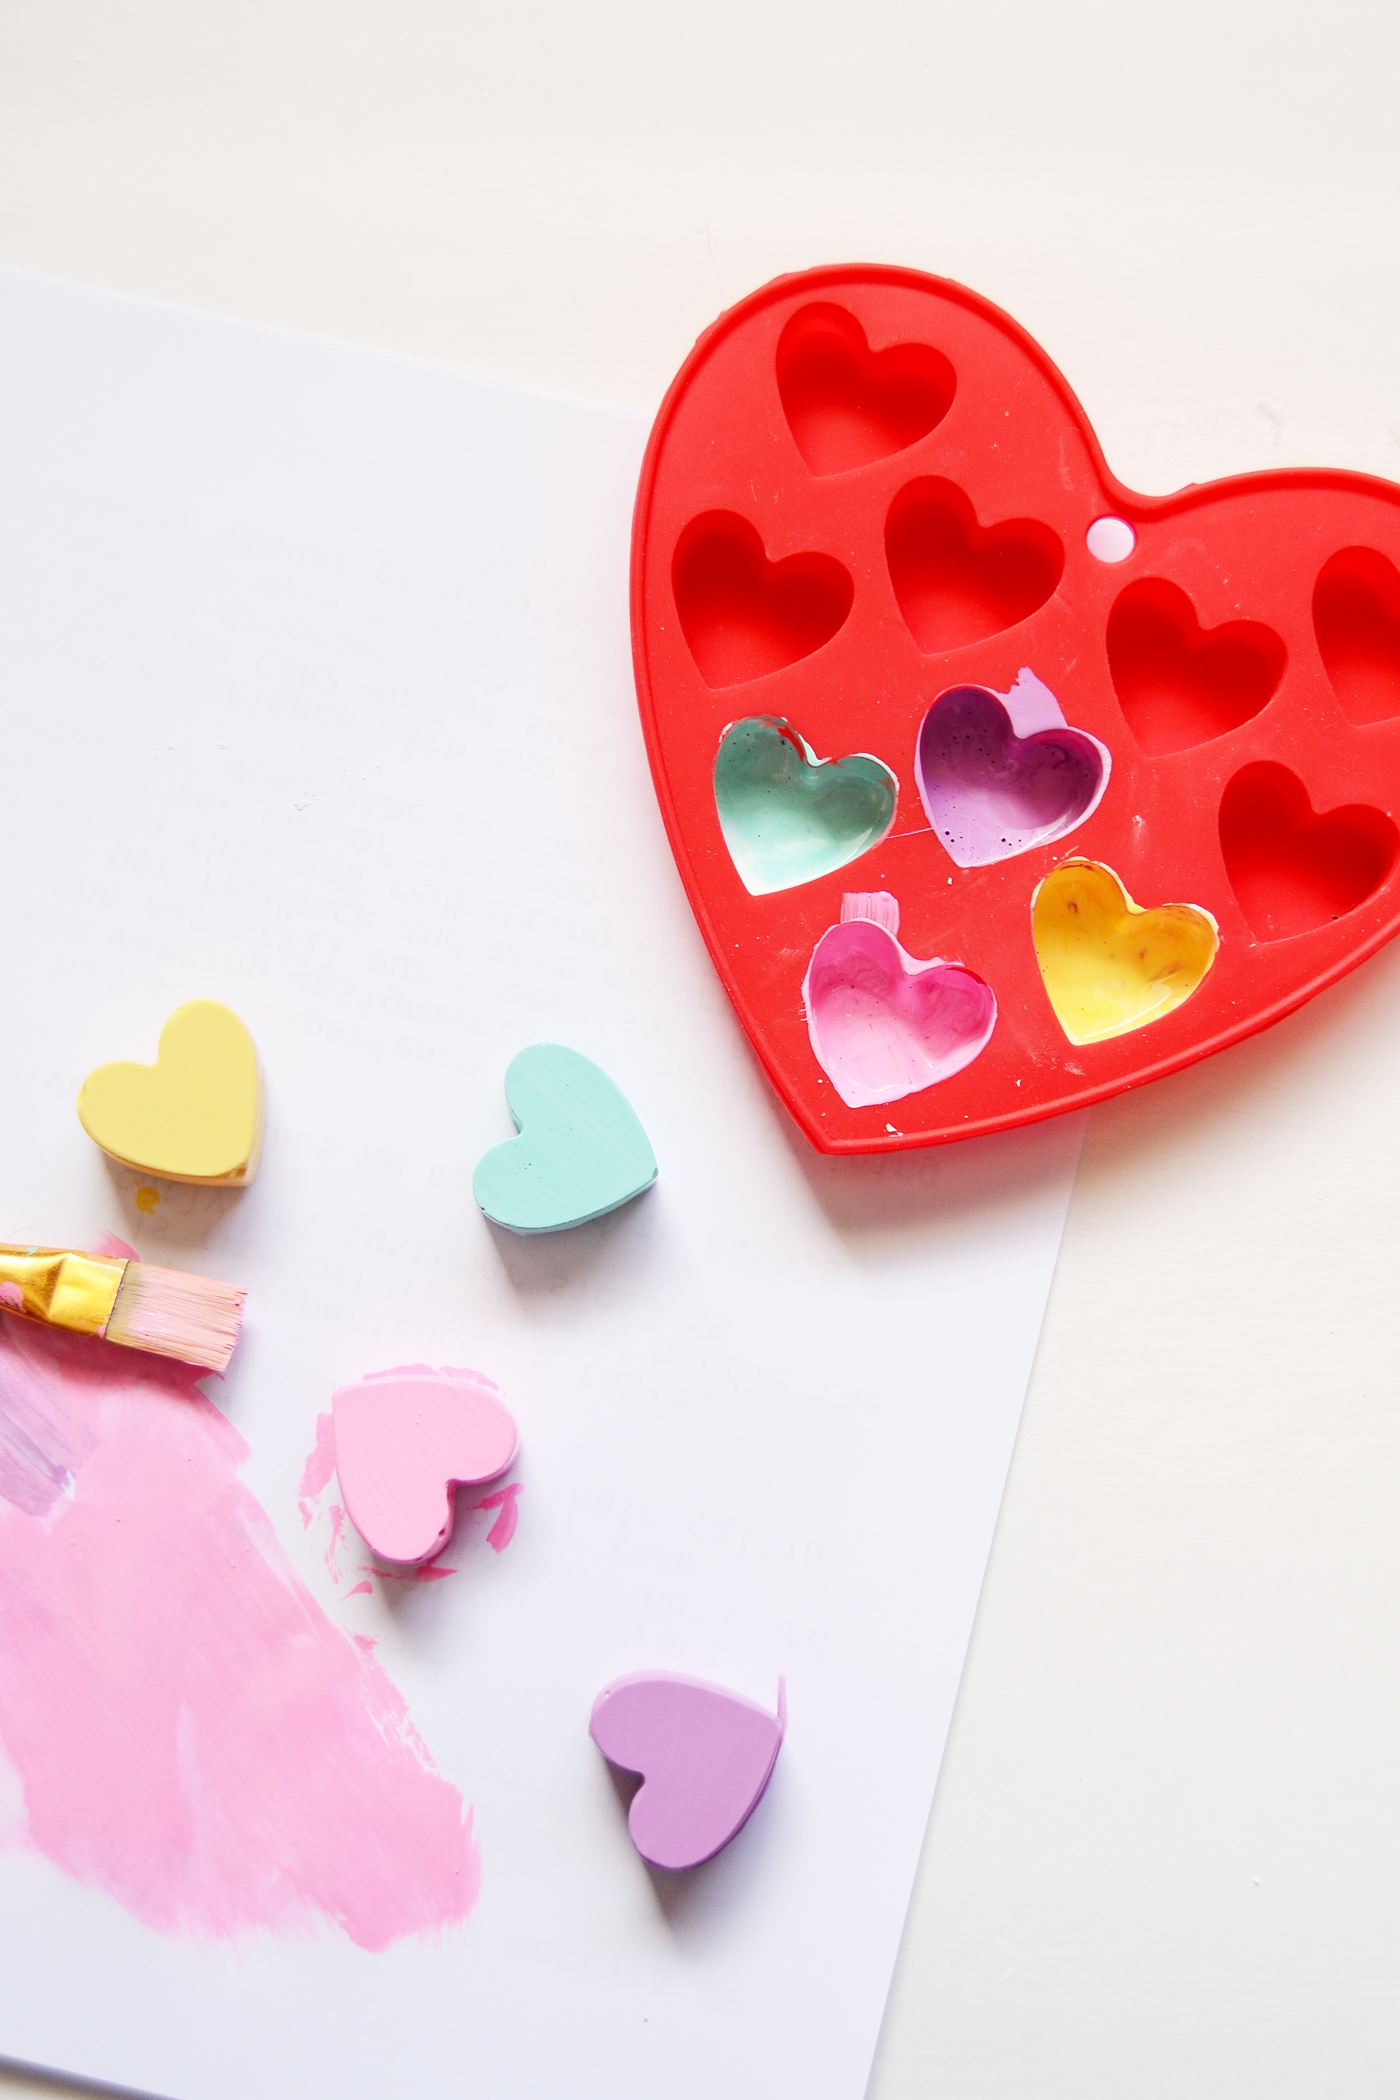 conversation-heart-plaster-magnet-minted-strawberry-for-diy-candy-5